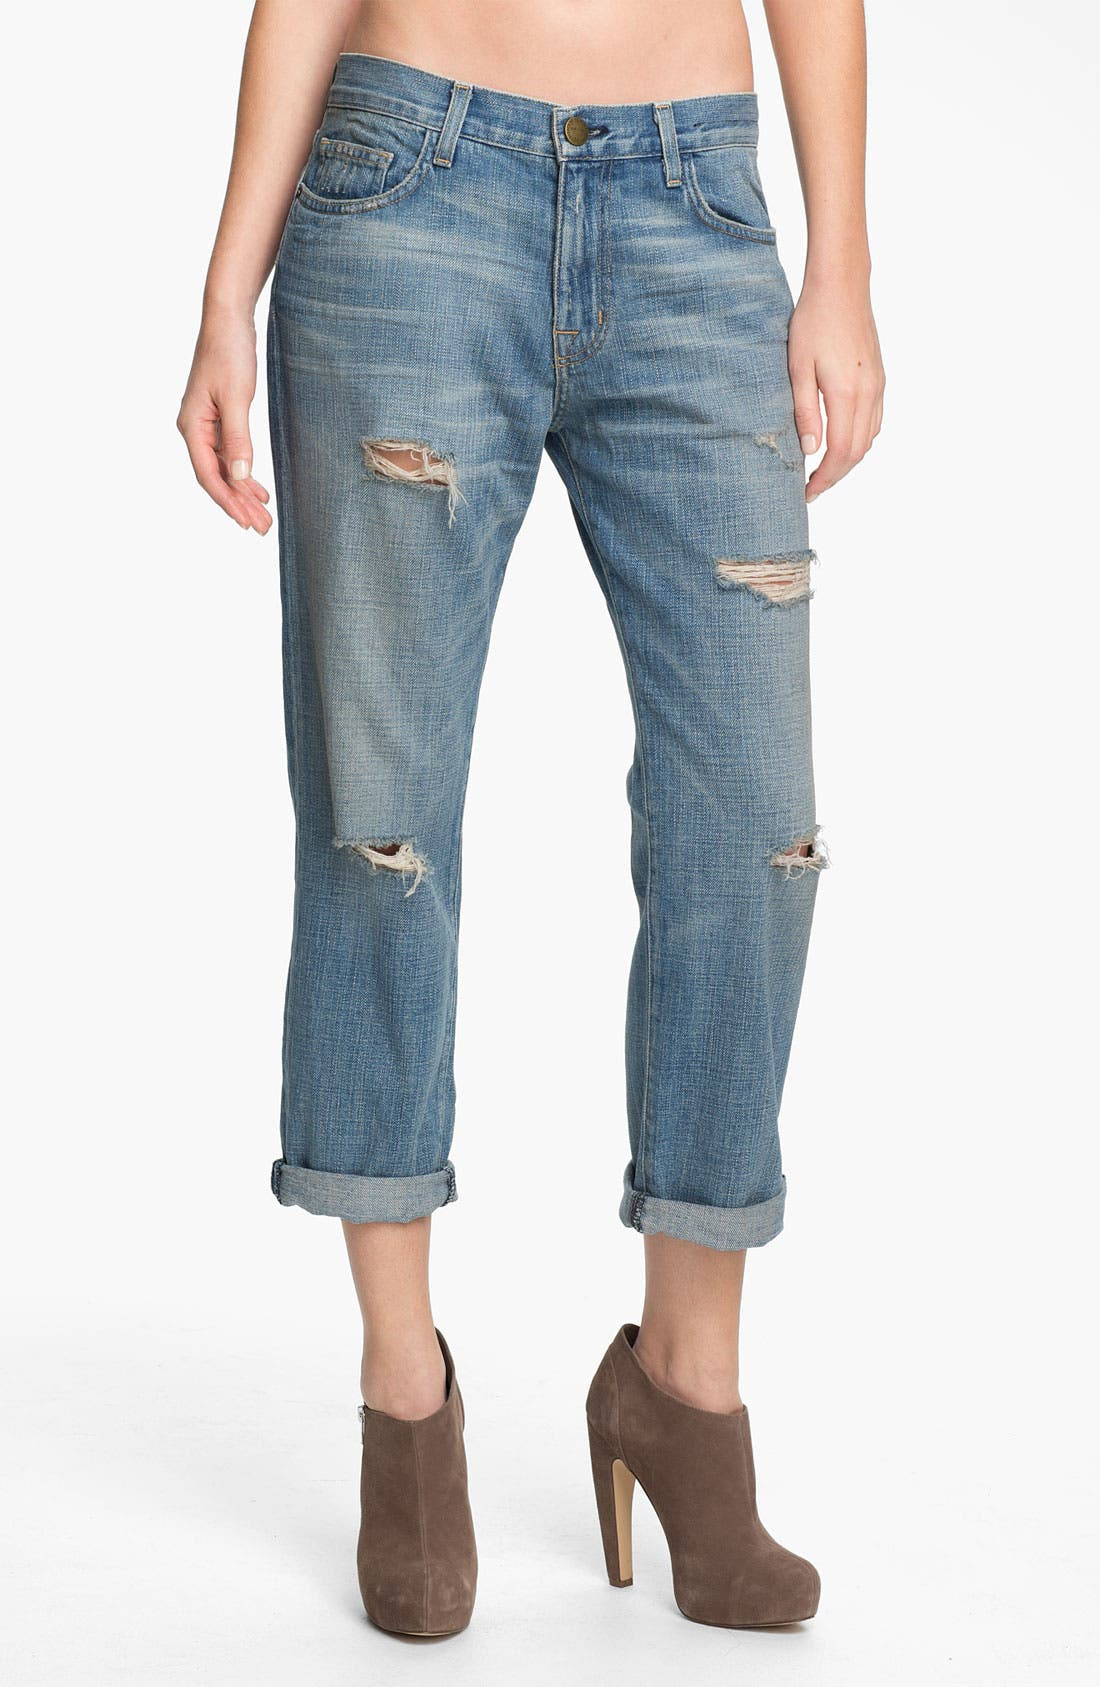 Alternate Image 1 Selected - Current/Elliott 'The Boyfriend Jean' Stretch Jeans (Super Loved Destroy)